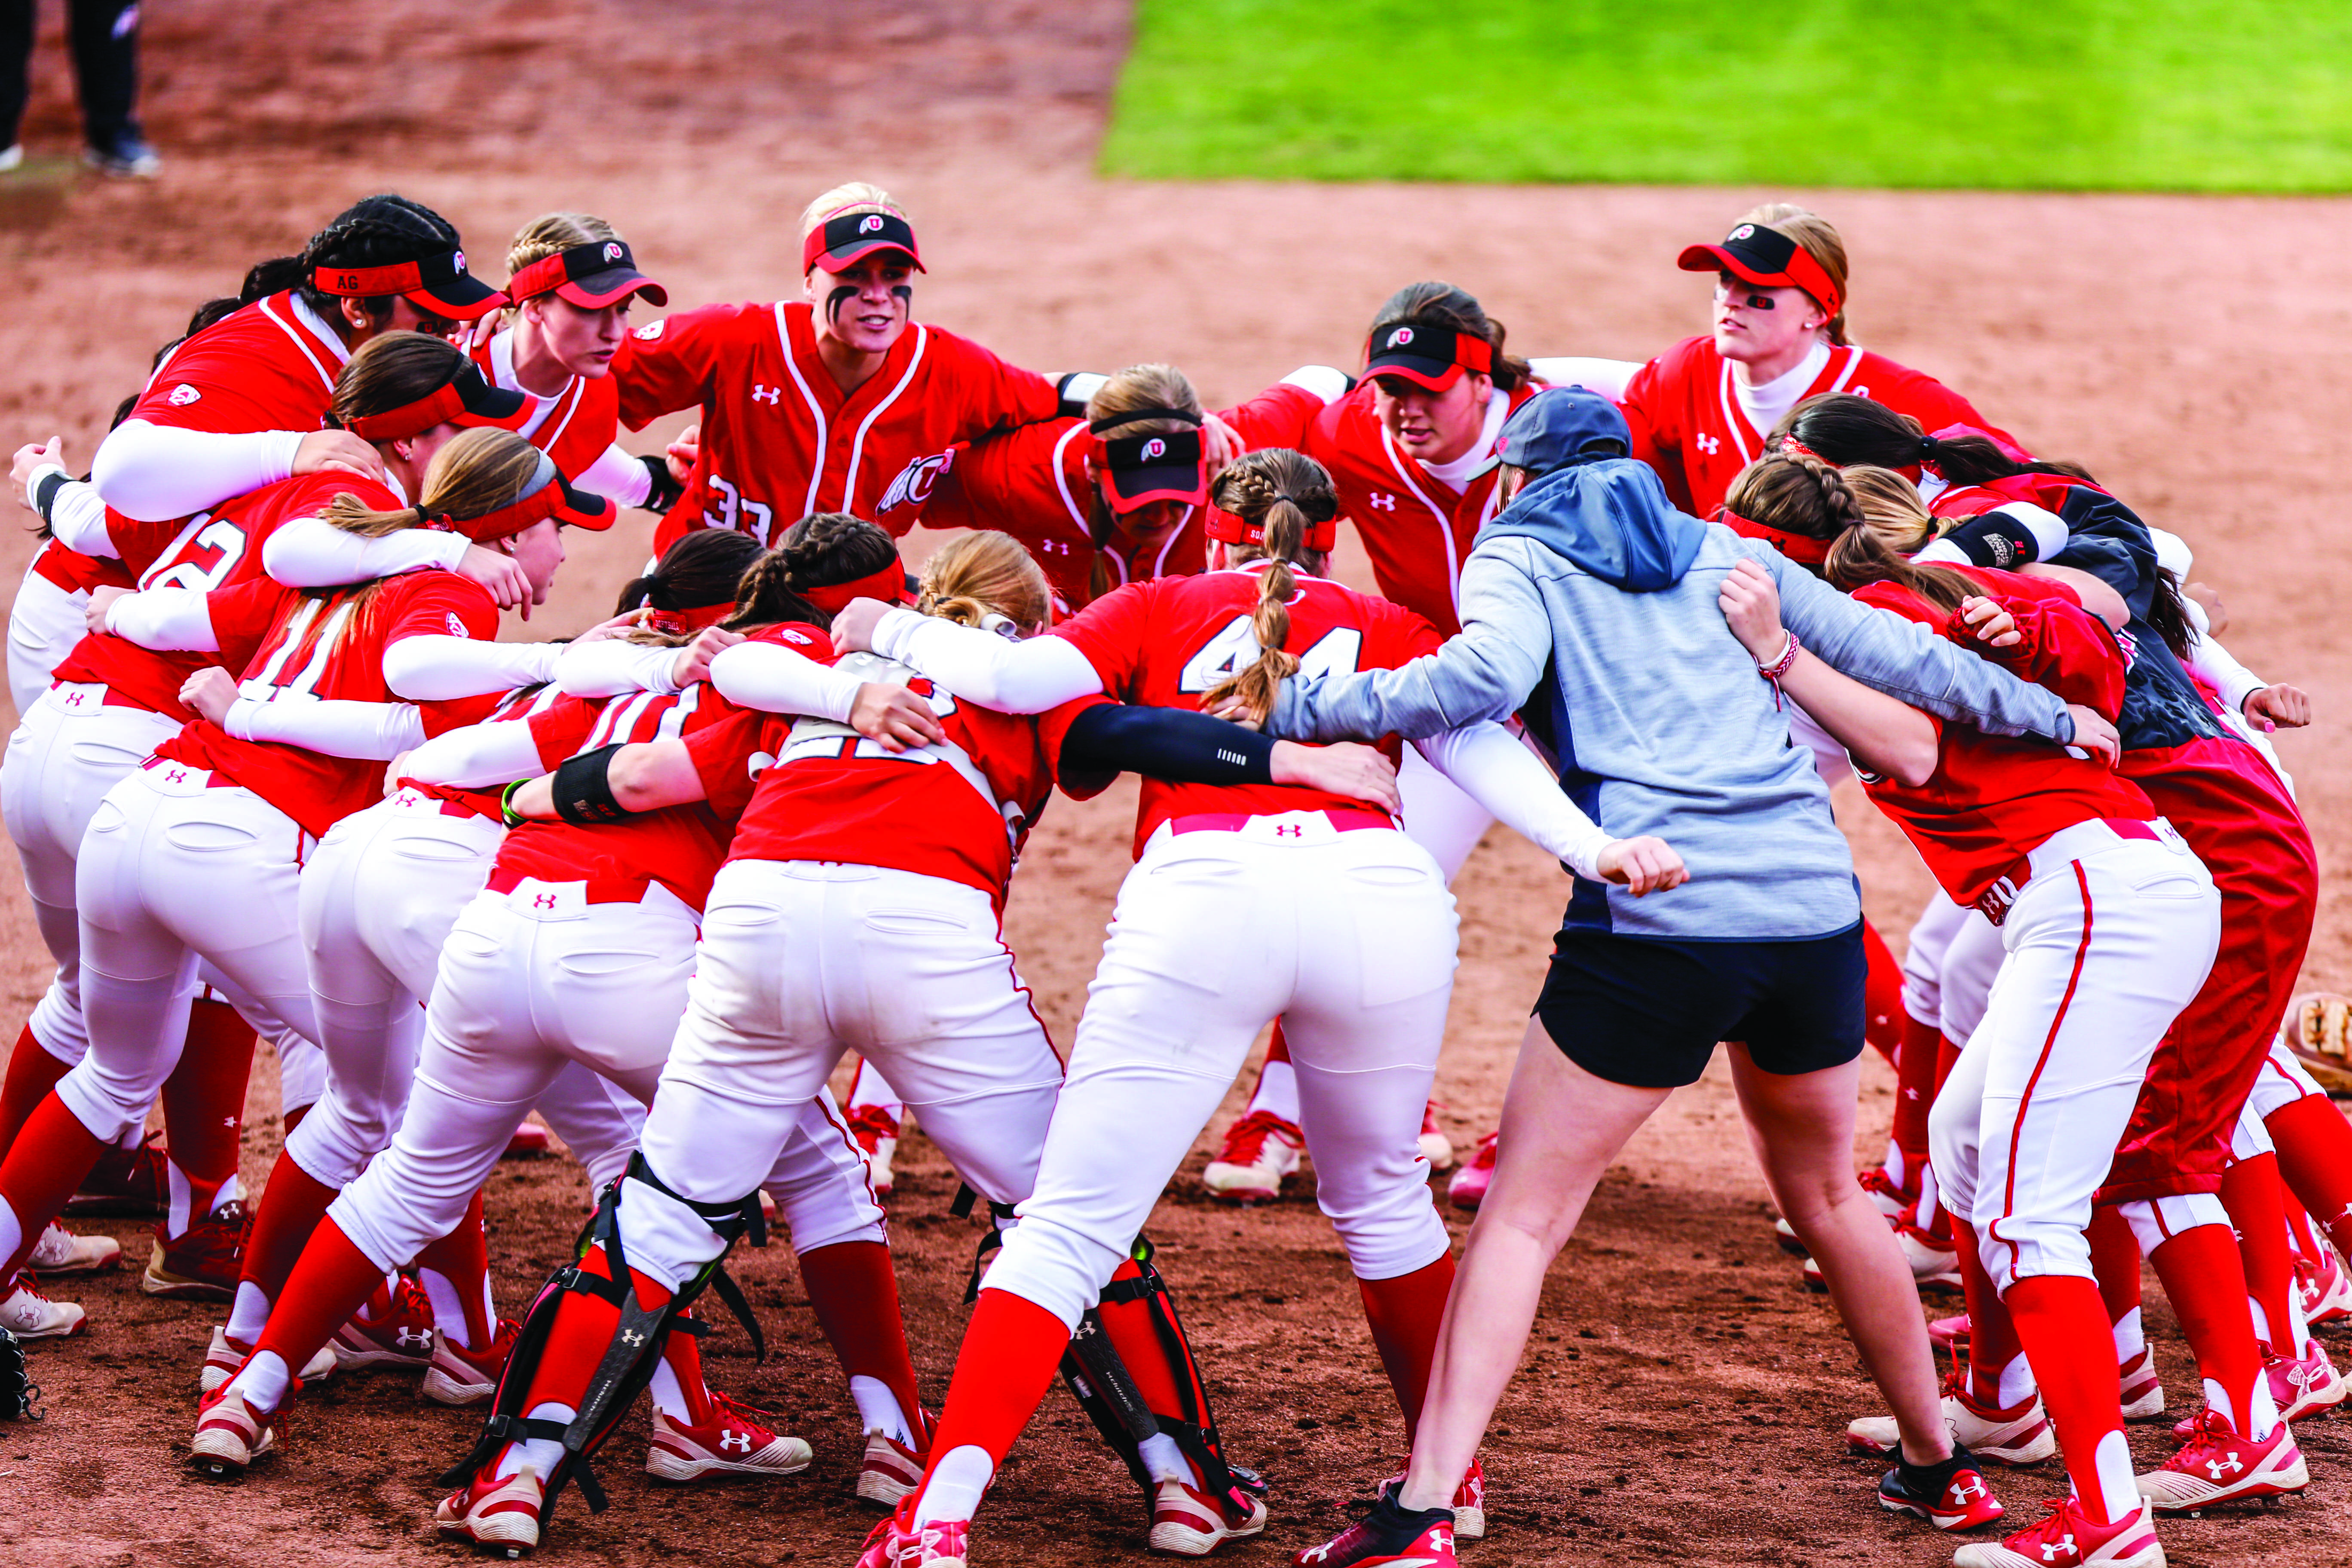 The University of Utah Softball Team huddle up prior to the start during an NCAA Softball game vs the BYU Cougars at Dumke Family Softball Stadium in Salt Lake City, UT on Wednesday April 18, 2018.  (Photo by Curtis Lin | Daily Utah Chronicle)